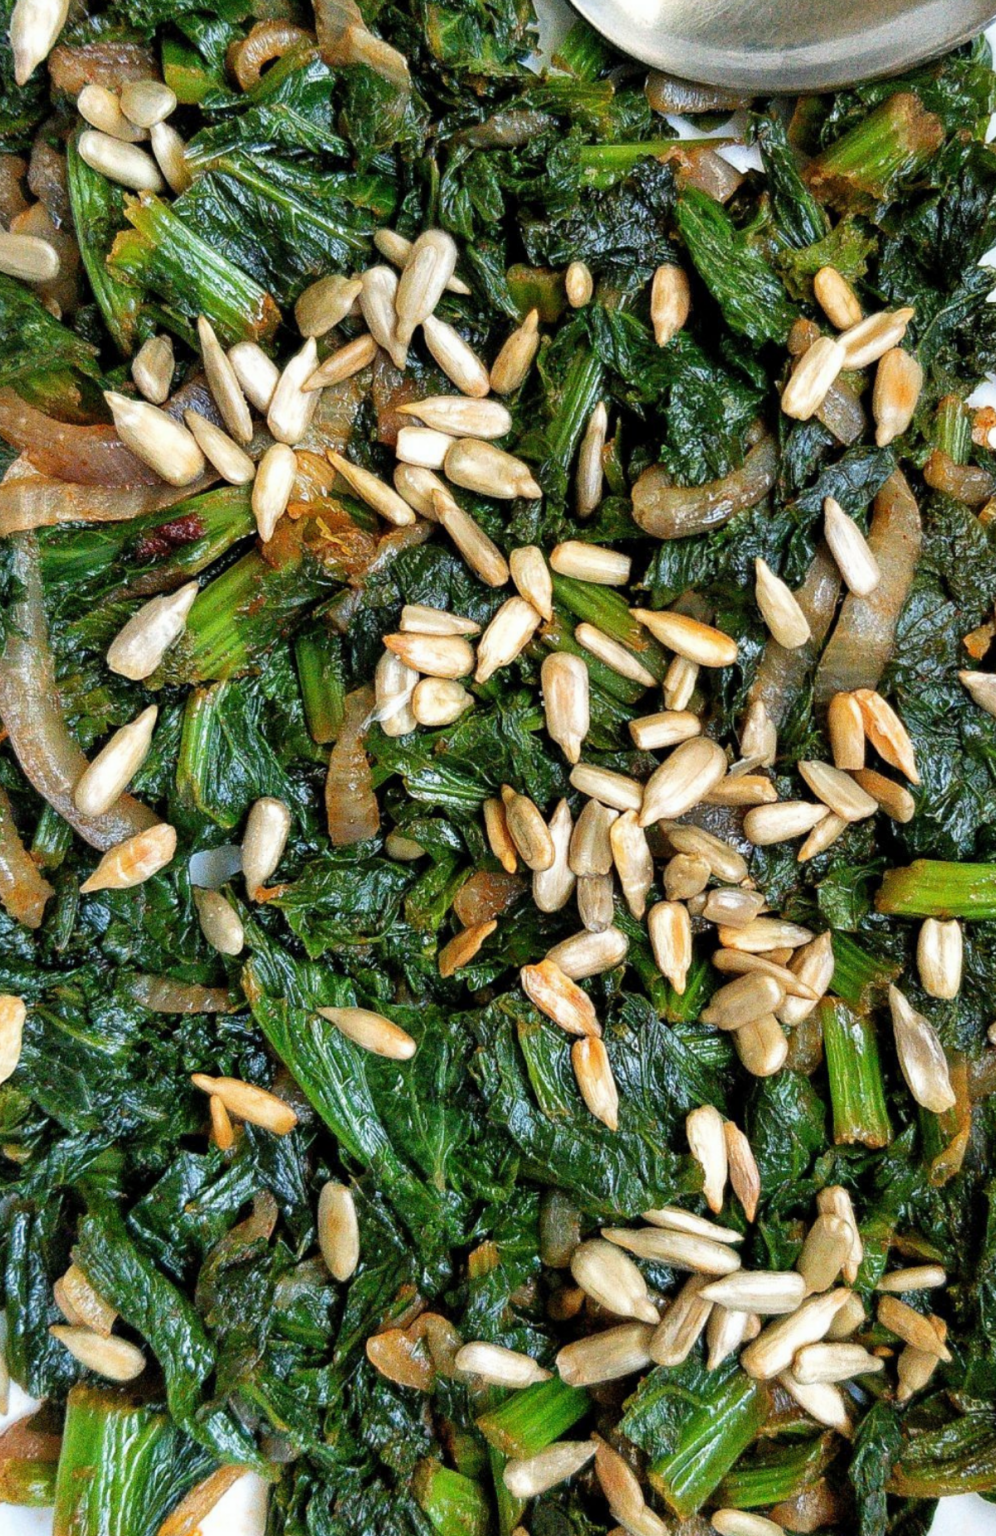 Pan-fried mustard greens with roasted sunflower seeds. #vegan #sides